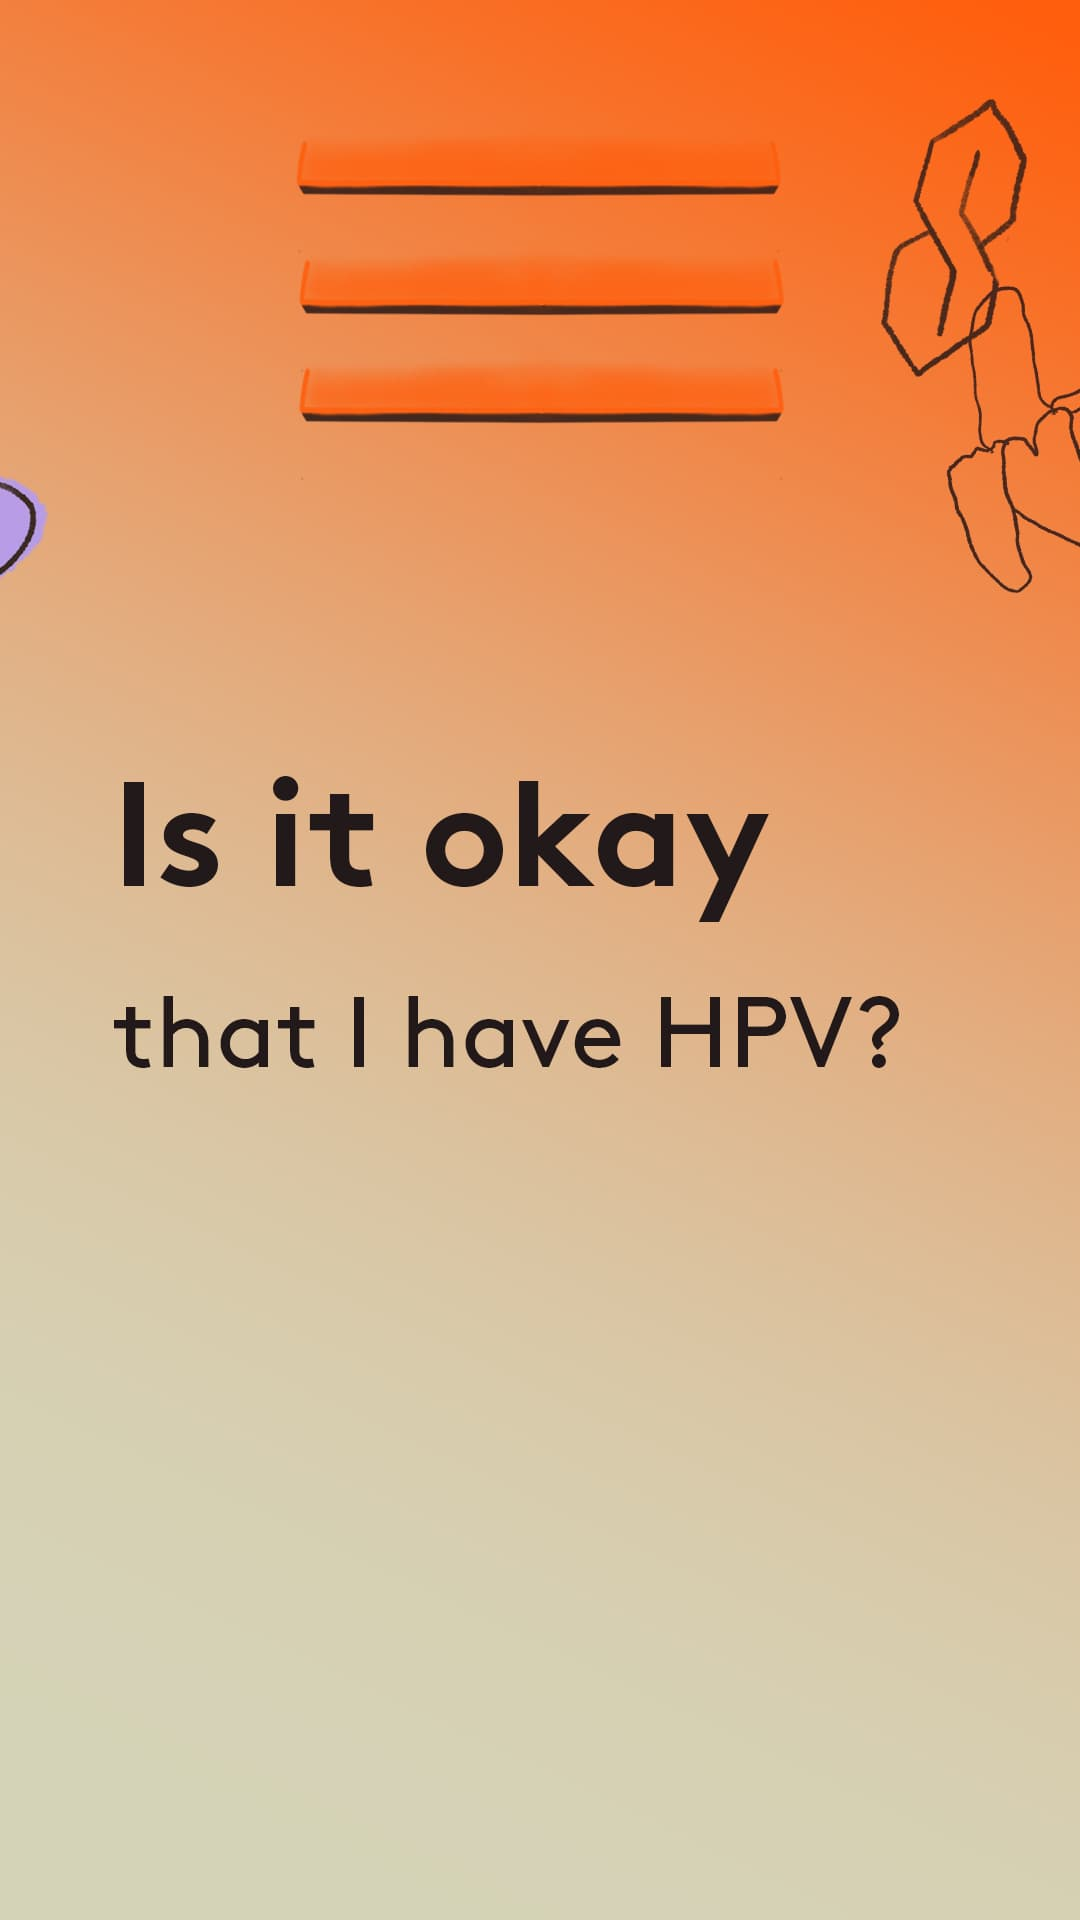 Is it okay that i have hpv?